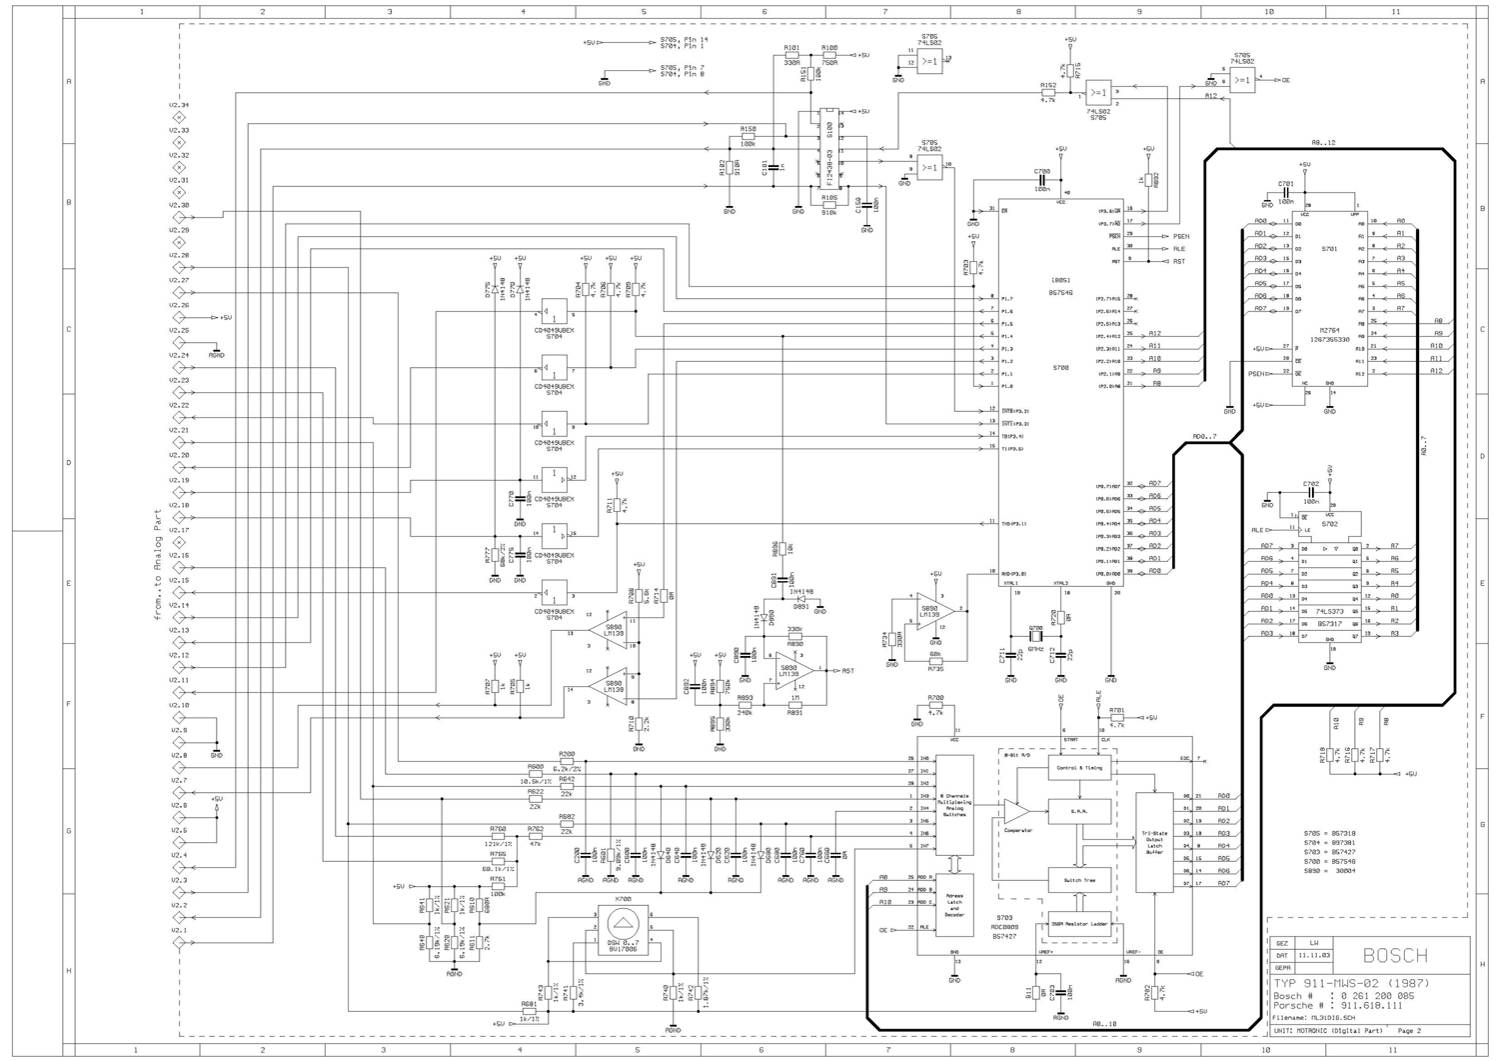 hight resolution of dme wiring diagram wiring diagram data val porsche 911 dme wiring diagram